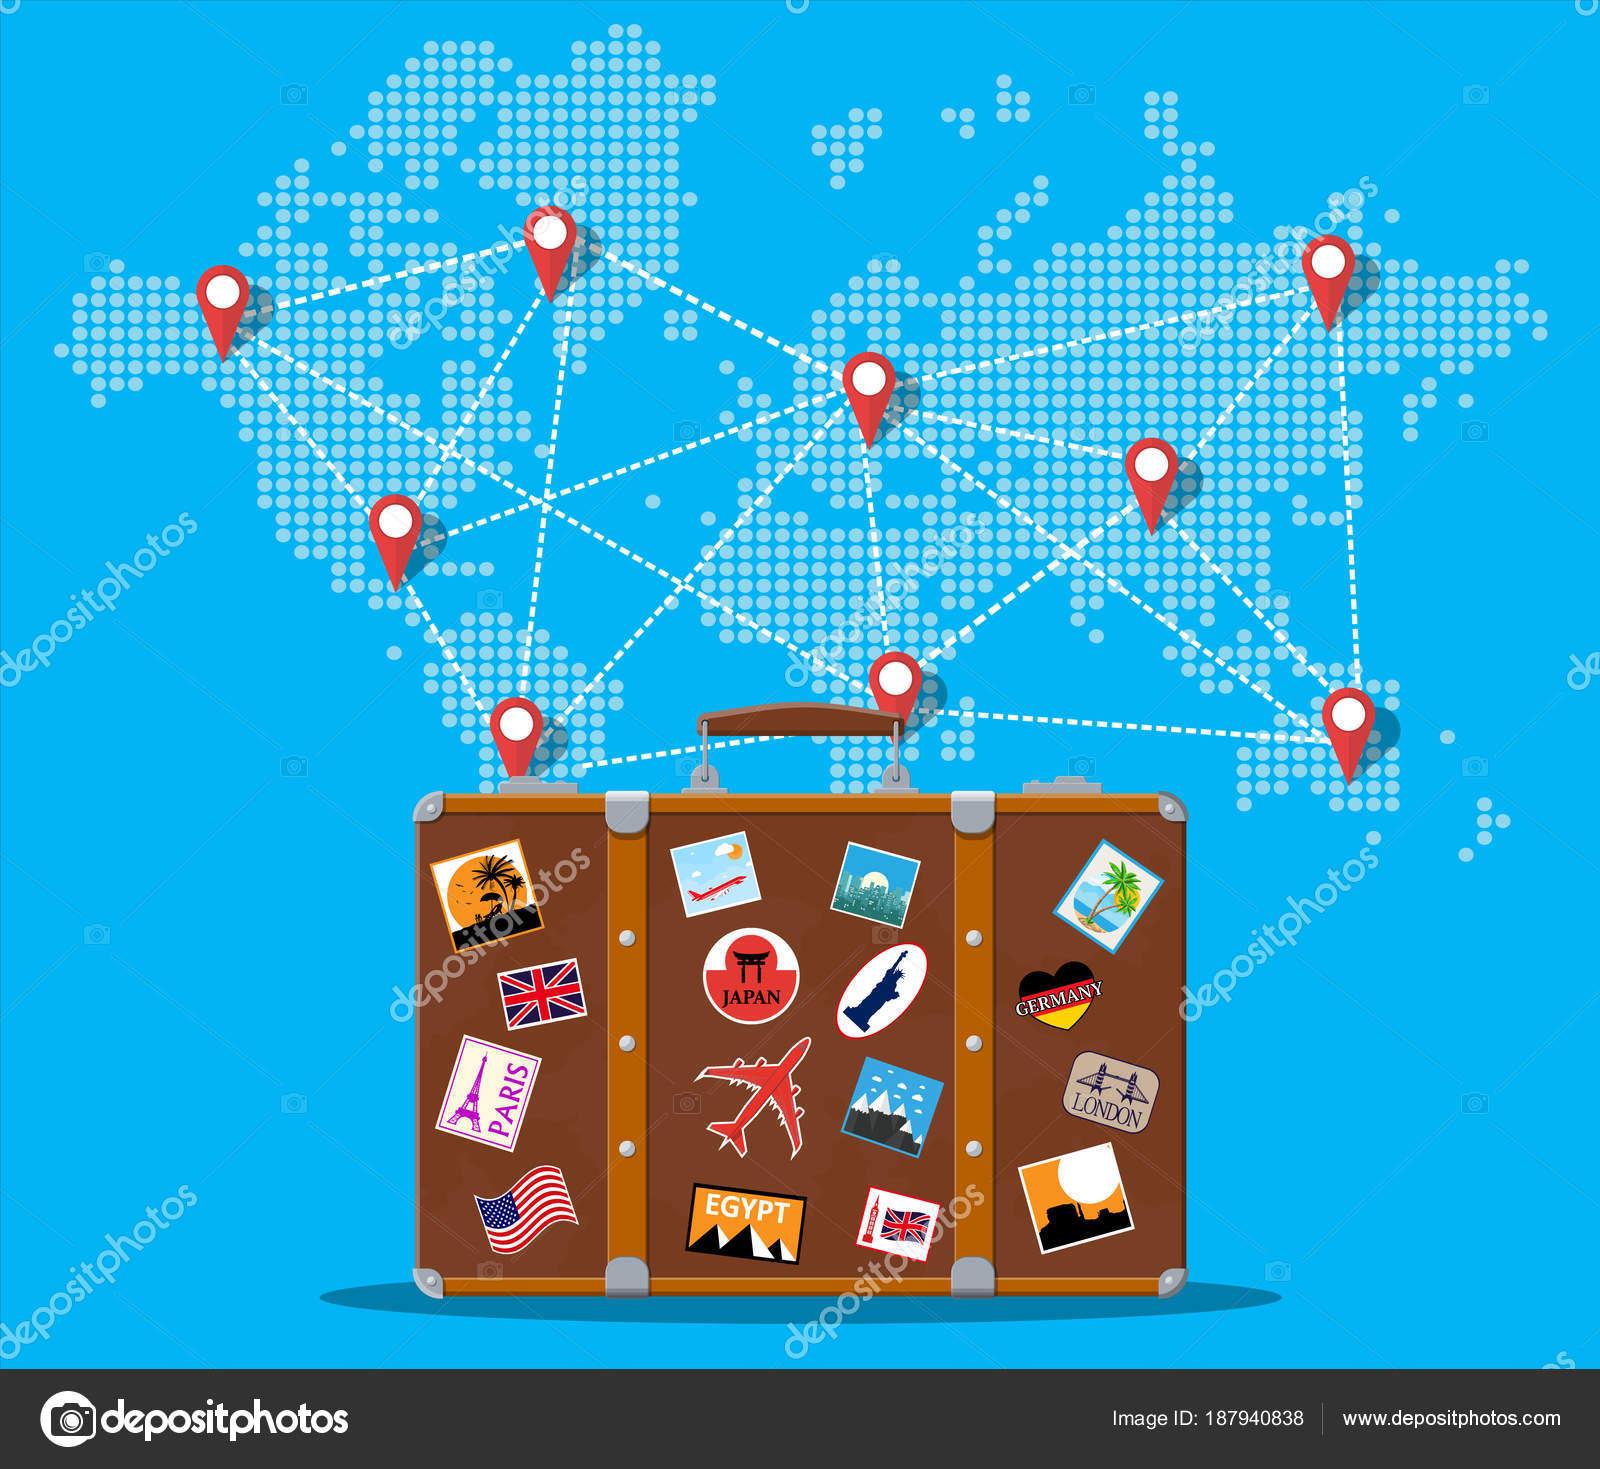 Travel suitcase with stickers and world map stock vector abscent travel suitcase with stickers of countrys and citys all over the world world map with travel destinations vacation and holiday gumiabroncs Images